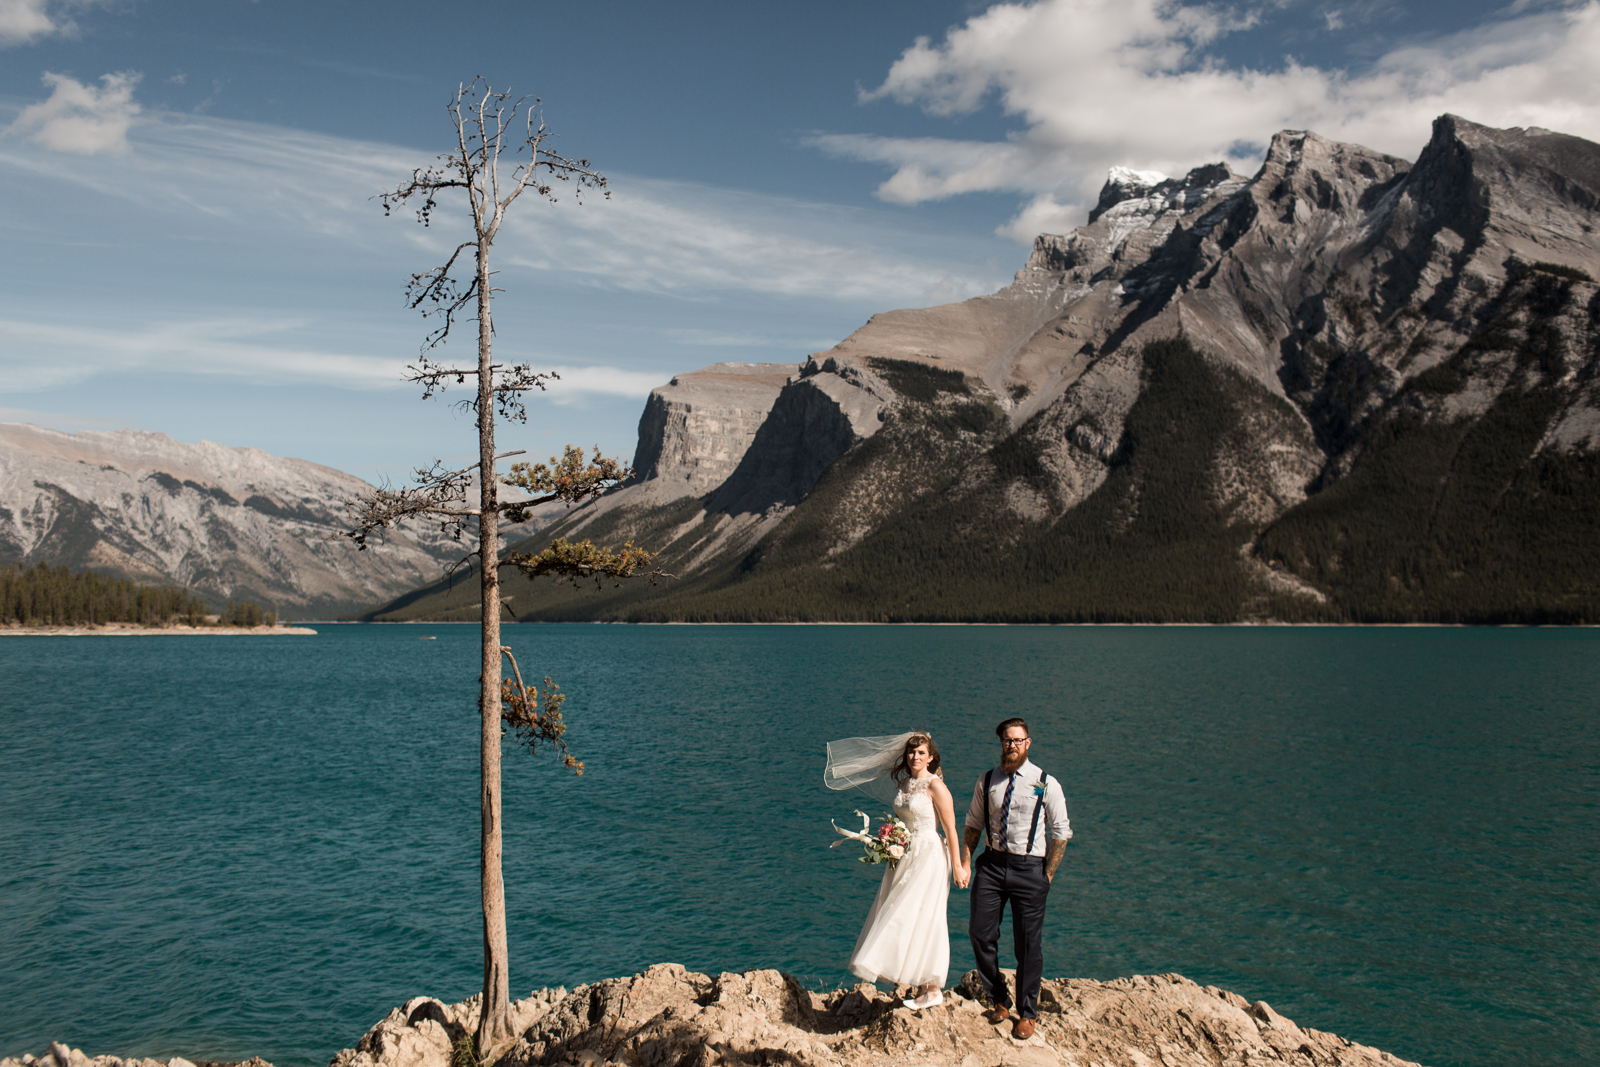 42-willow_and_wolf_photography_stephanie_and_kyle_banff_wedding_blogatp_8183